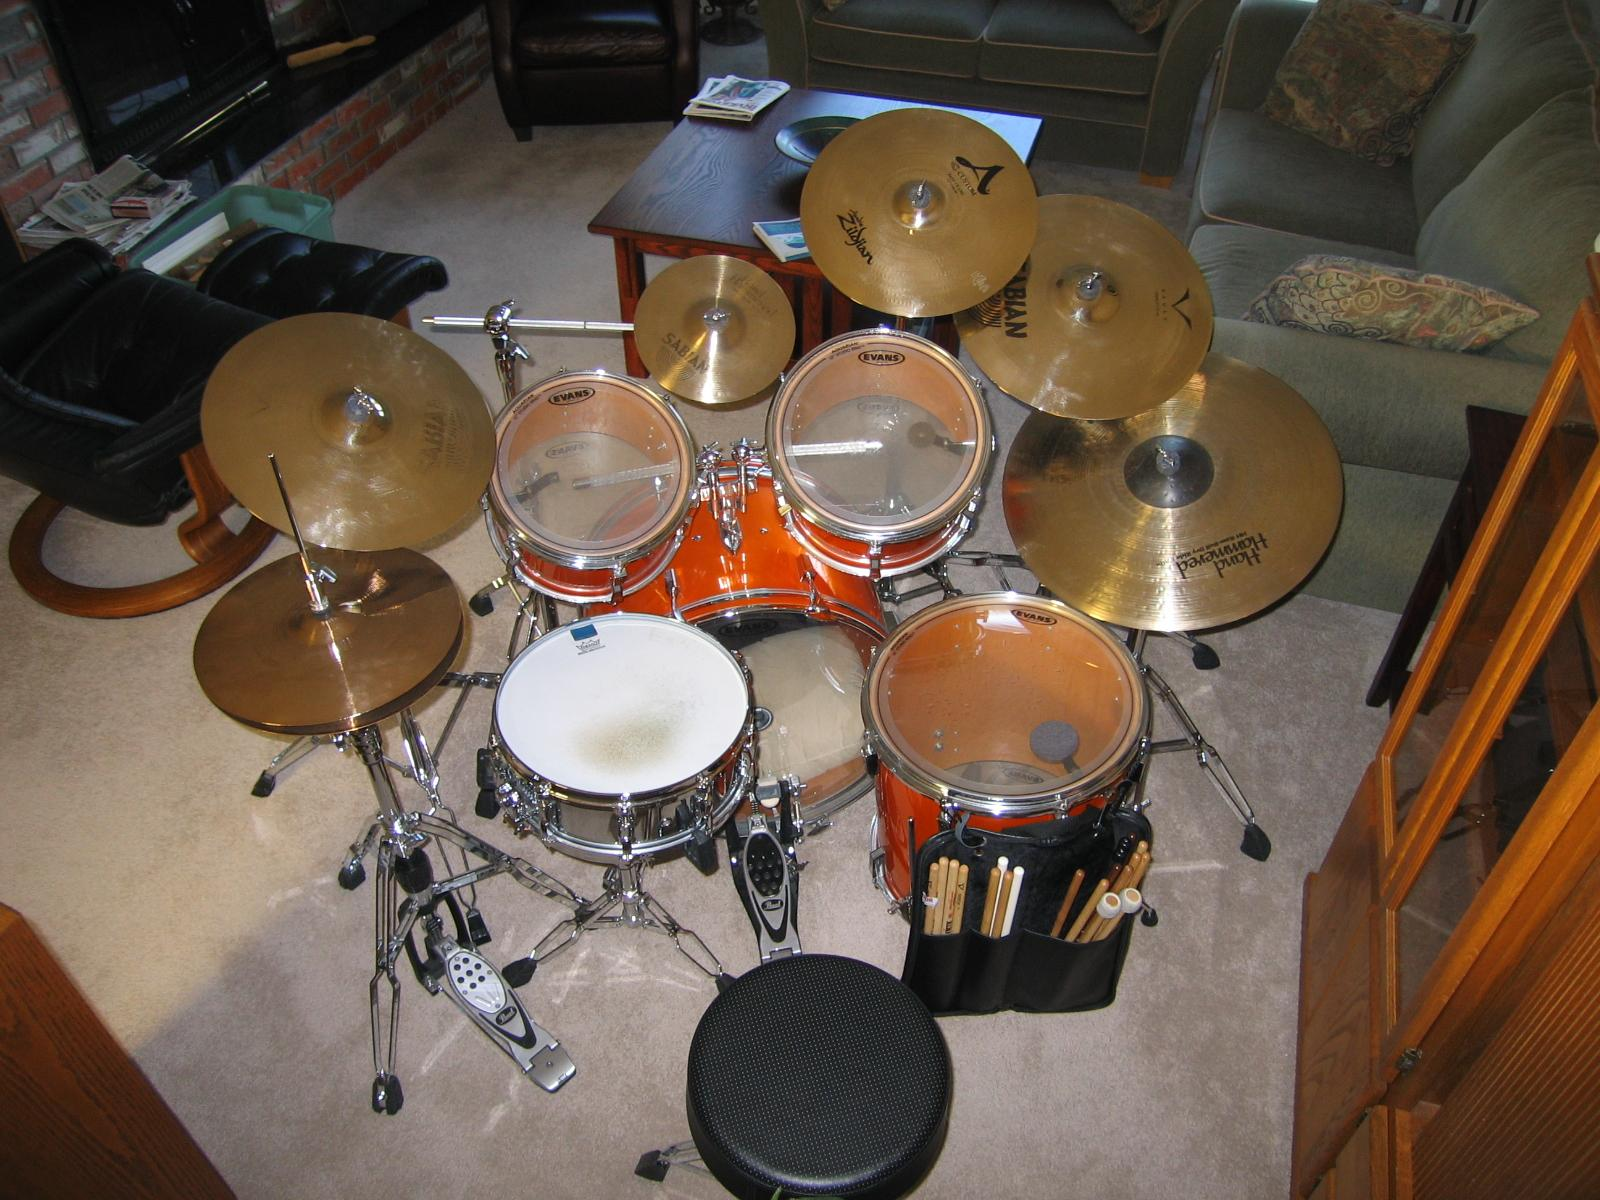 Optional of my Sonor kit